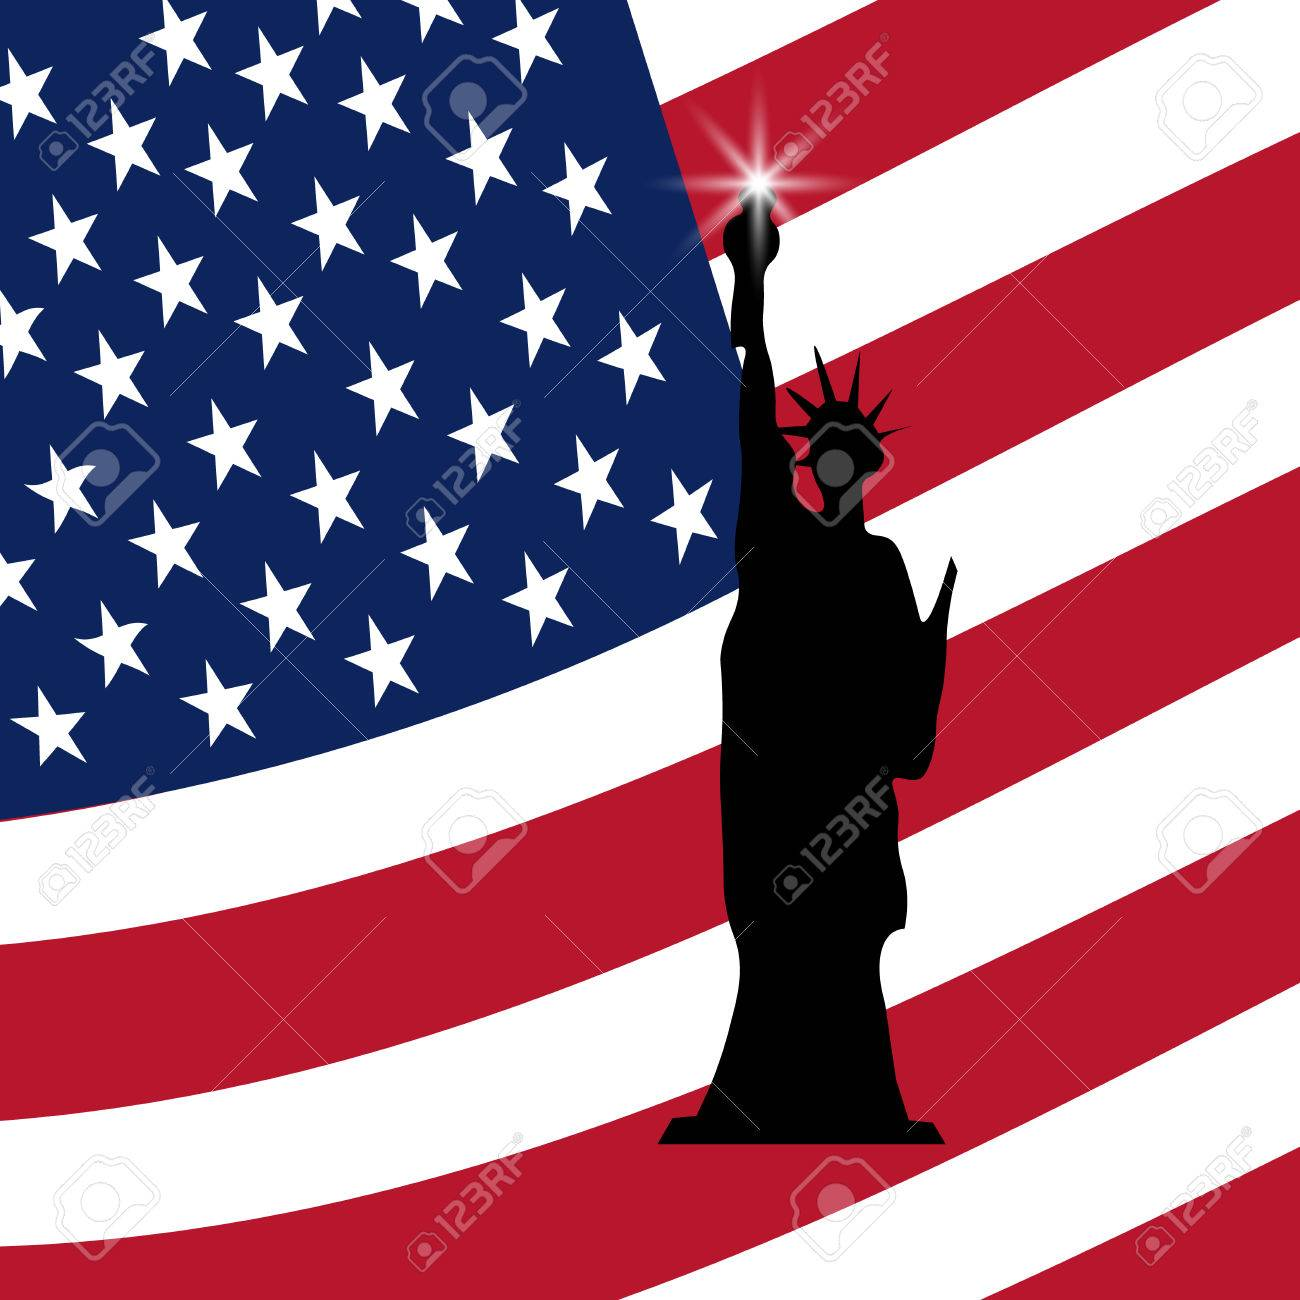 American Independence Day The Statue Of Liberty Us Symbols